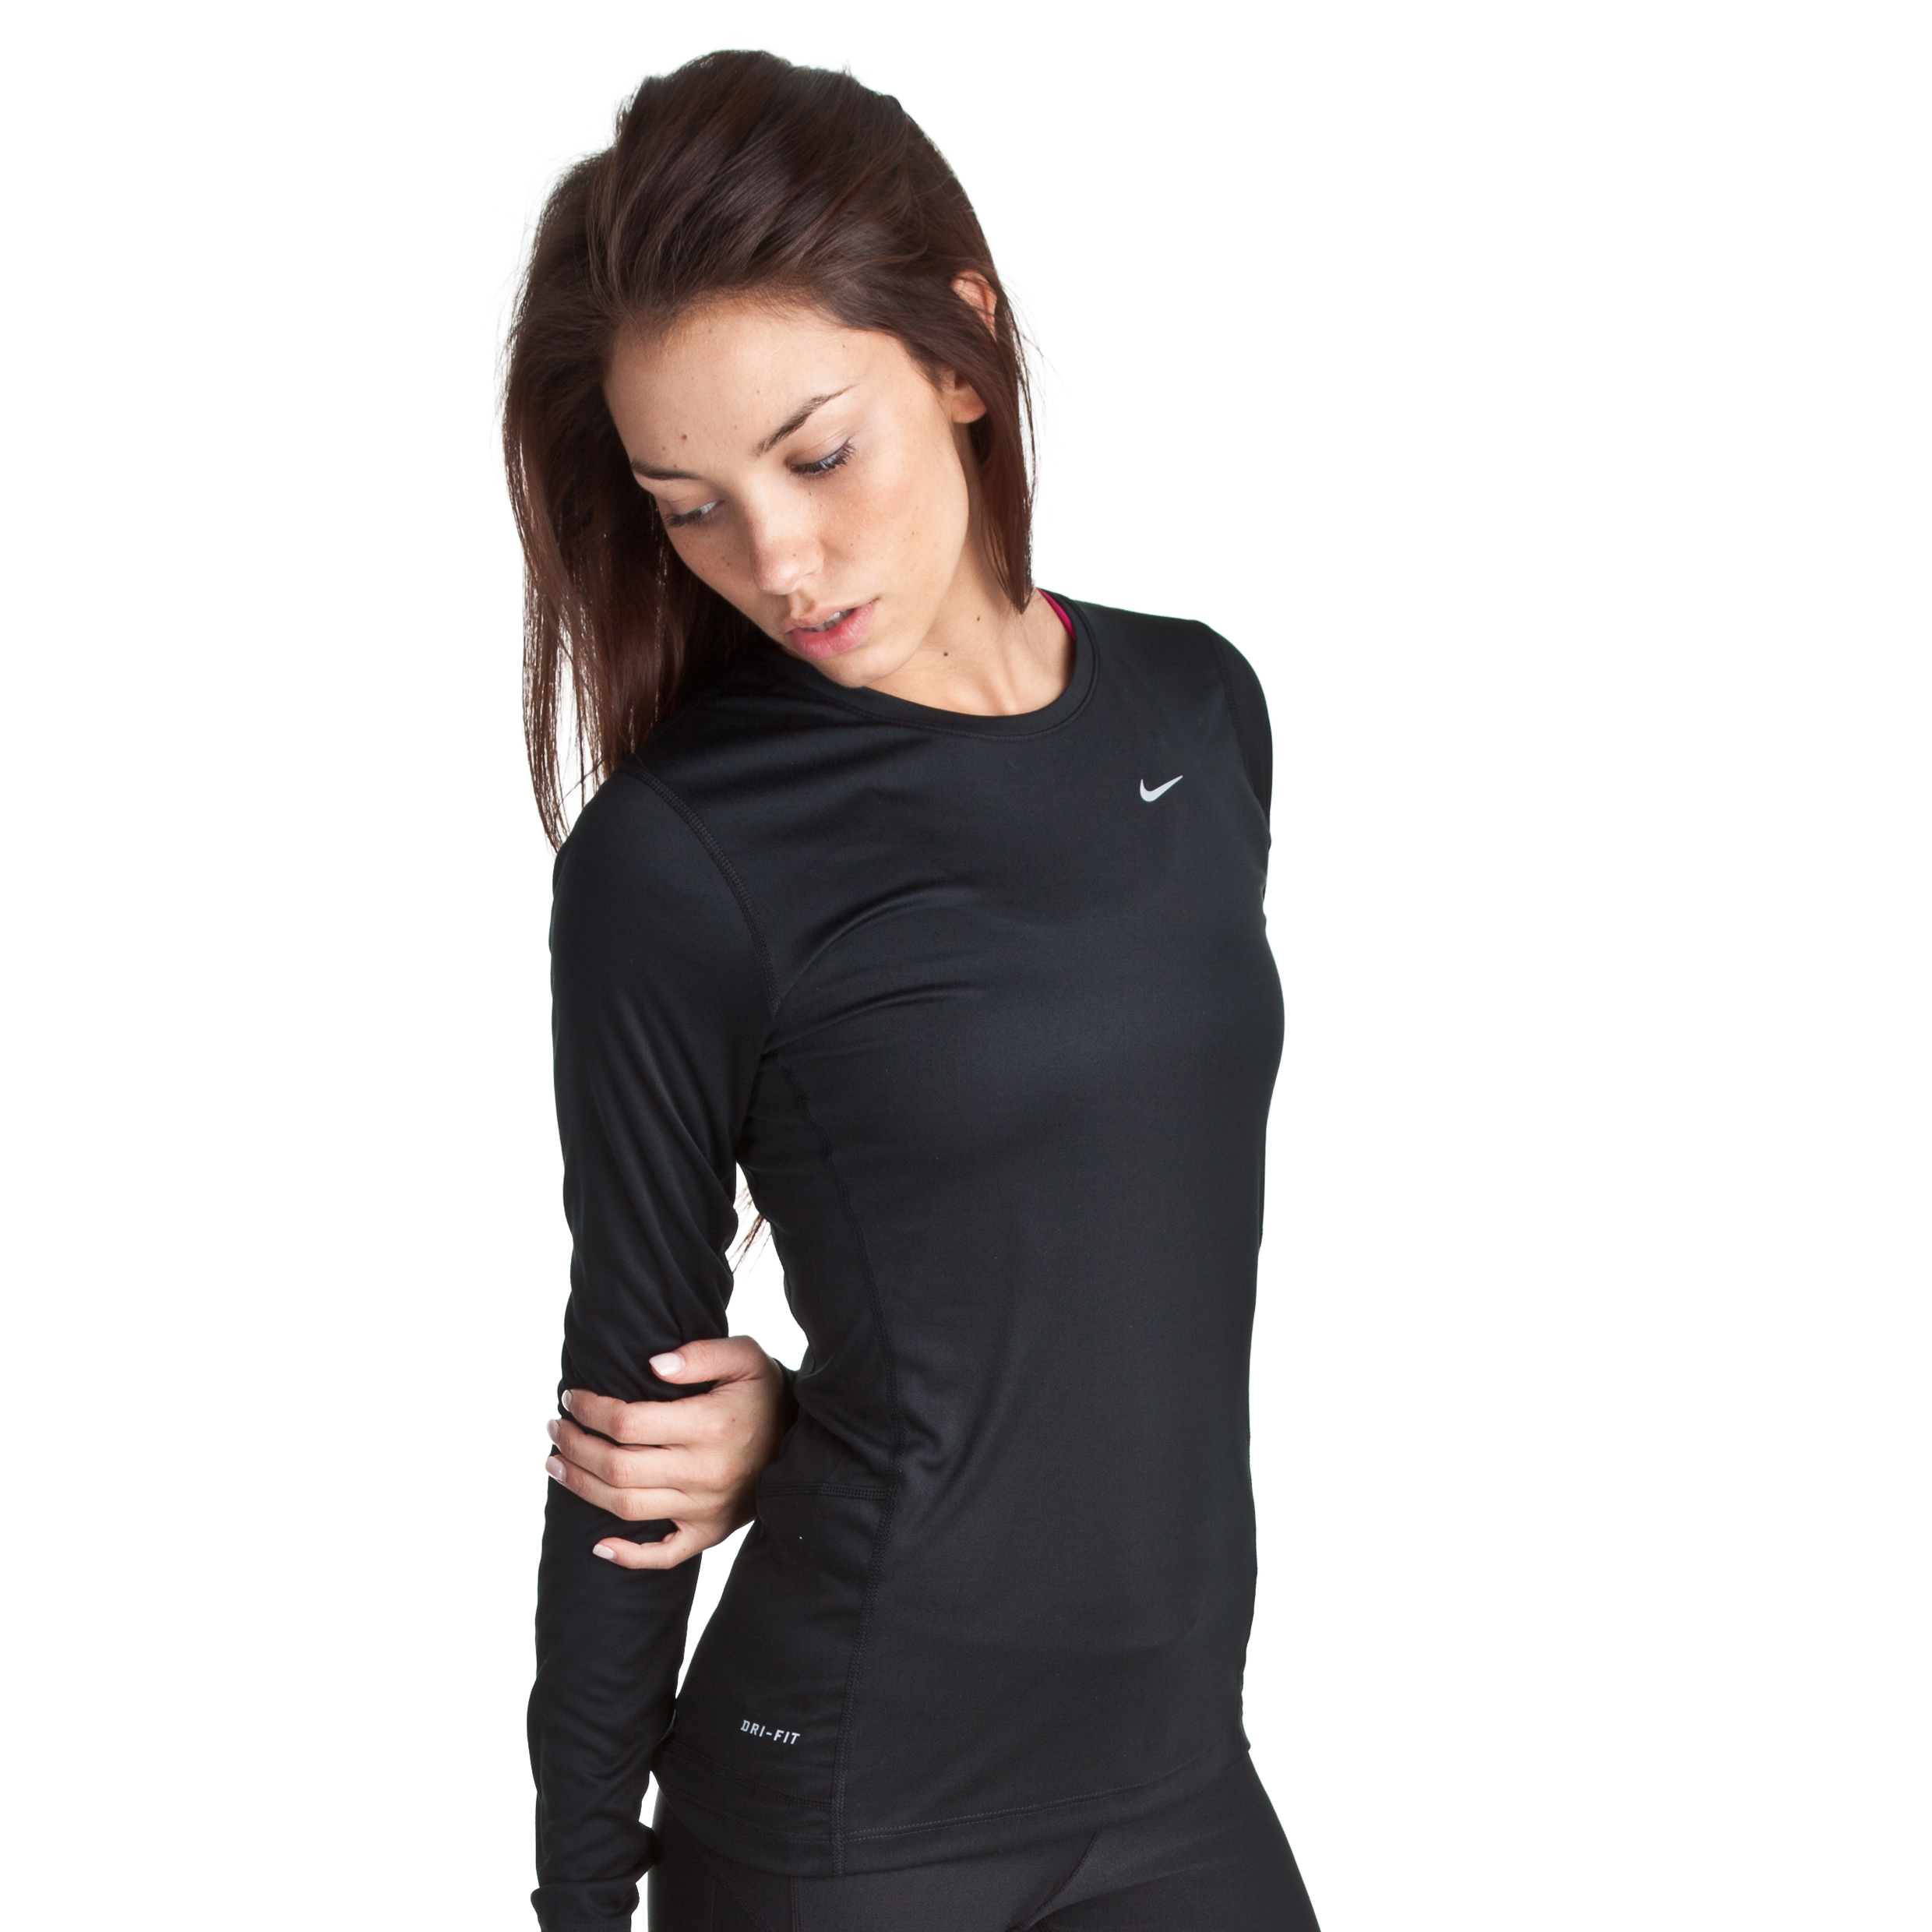 Nike Miler Long Sleeve Top - Black/Metallic Bronze - Womens